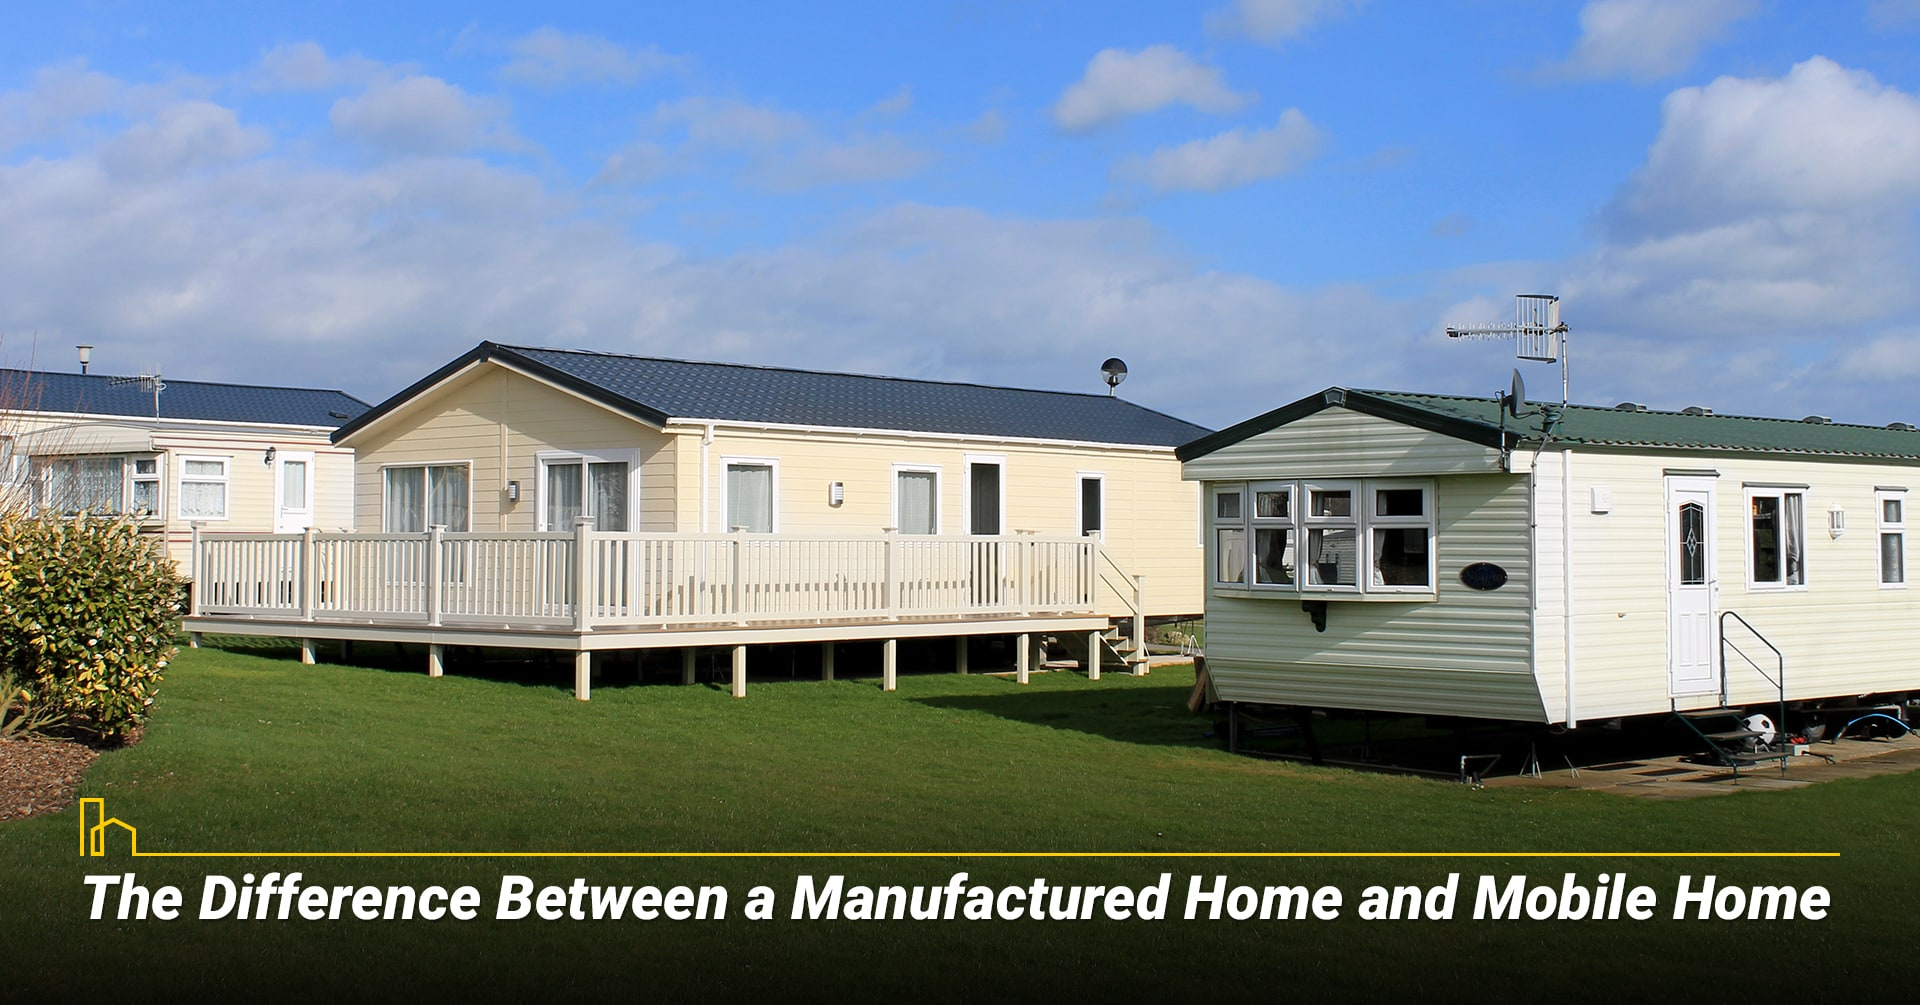 The Difference Between a Manufactured Home and Mobile Home, learn about a Manufactured Home and Mobile Home